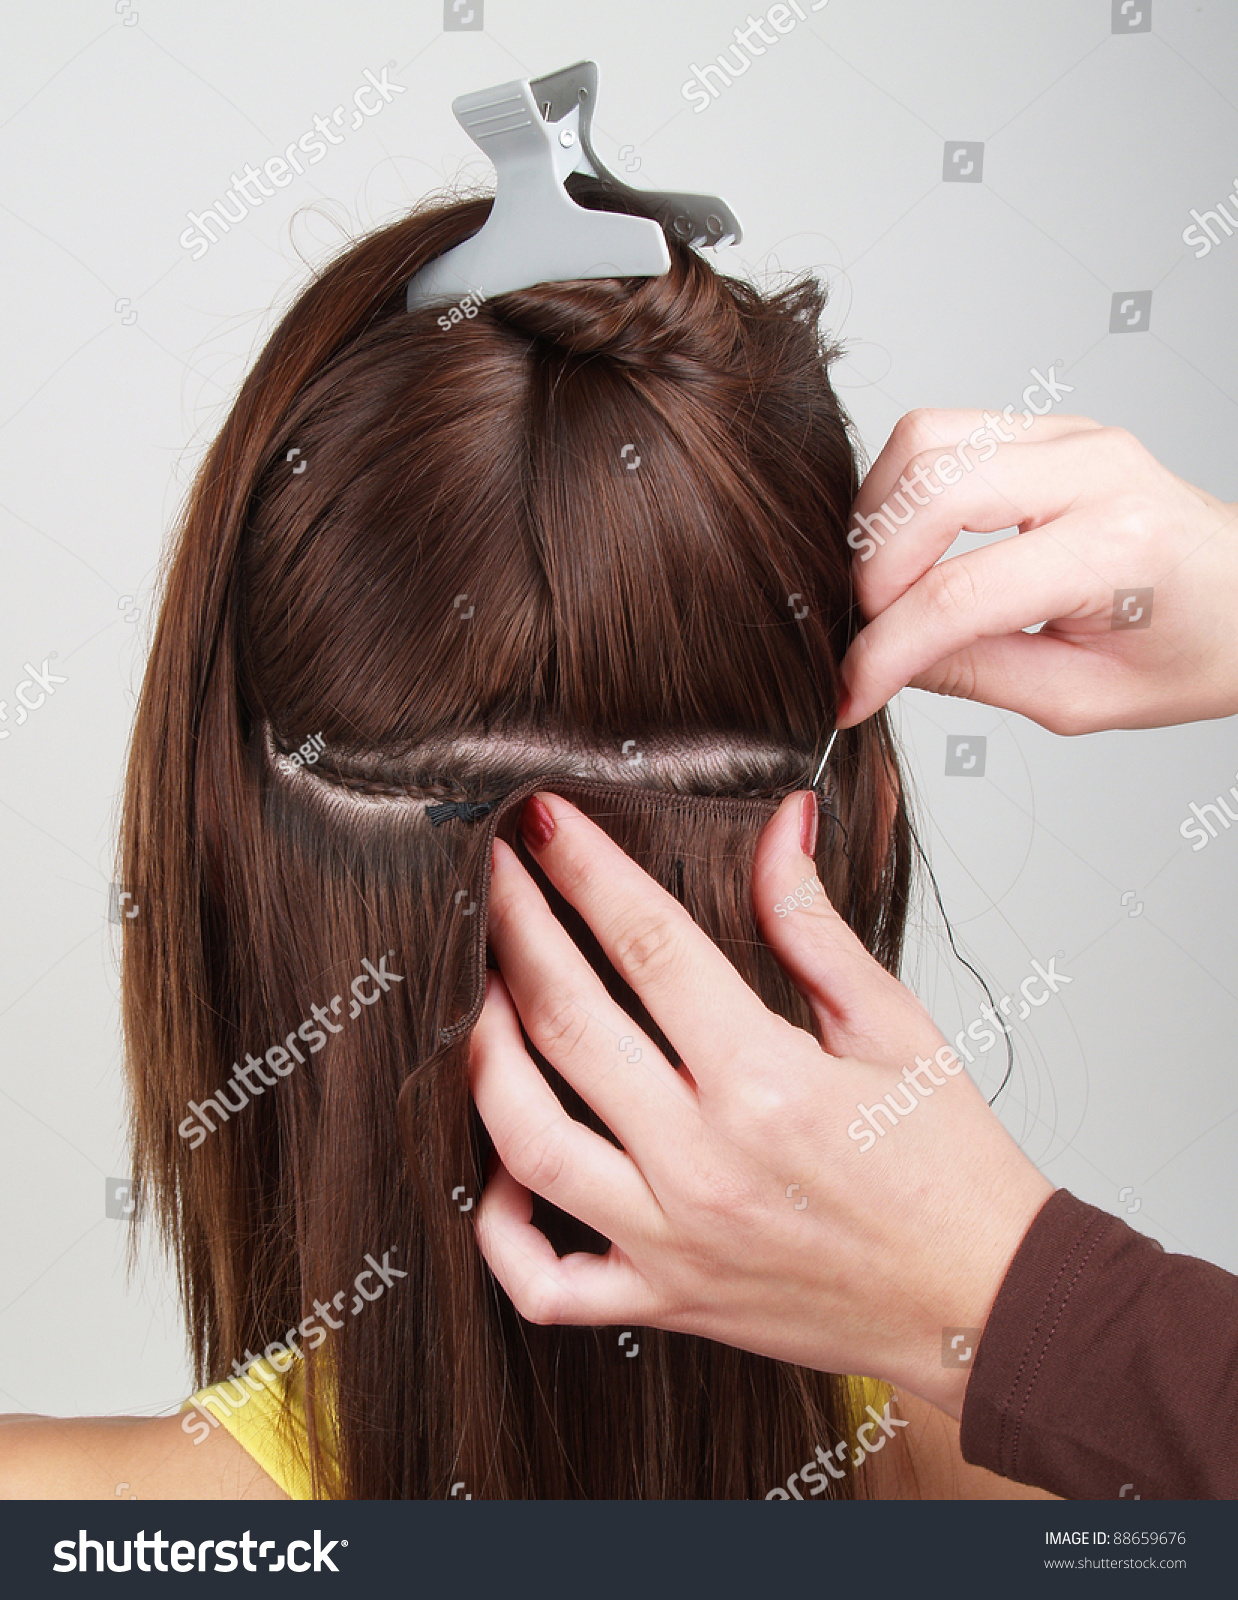 Hair Extensions Tress Stock Photo Royalty Free 88659676 Shutterstock